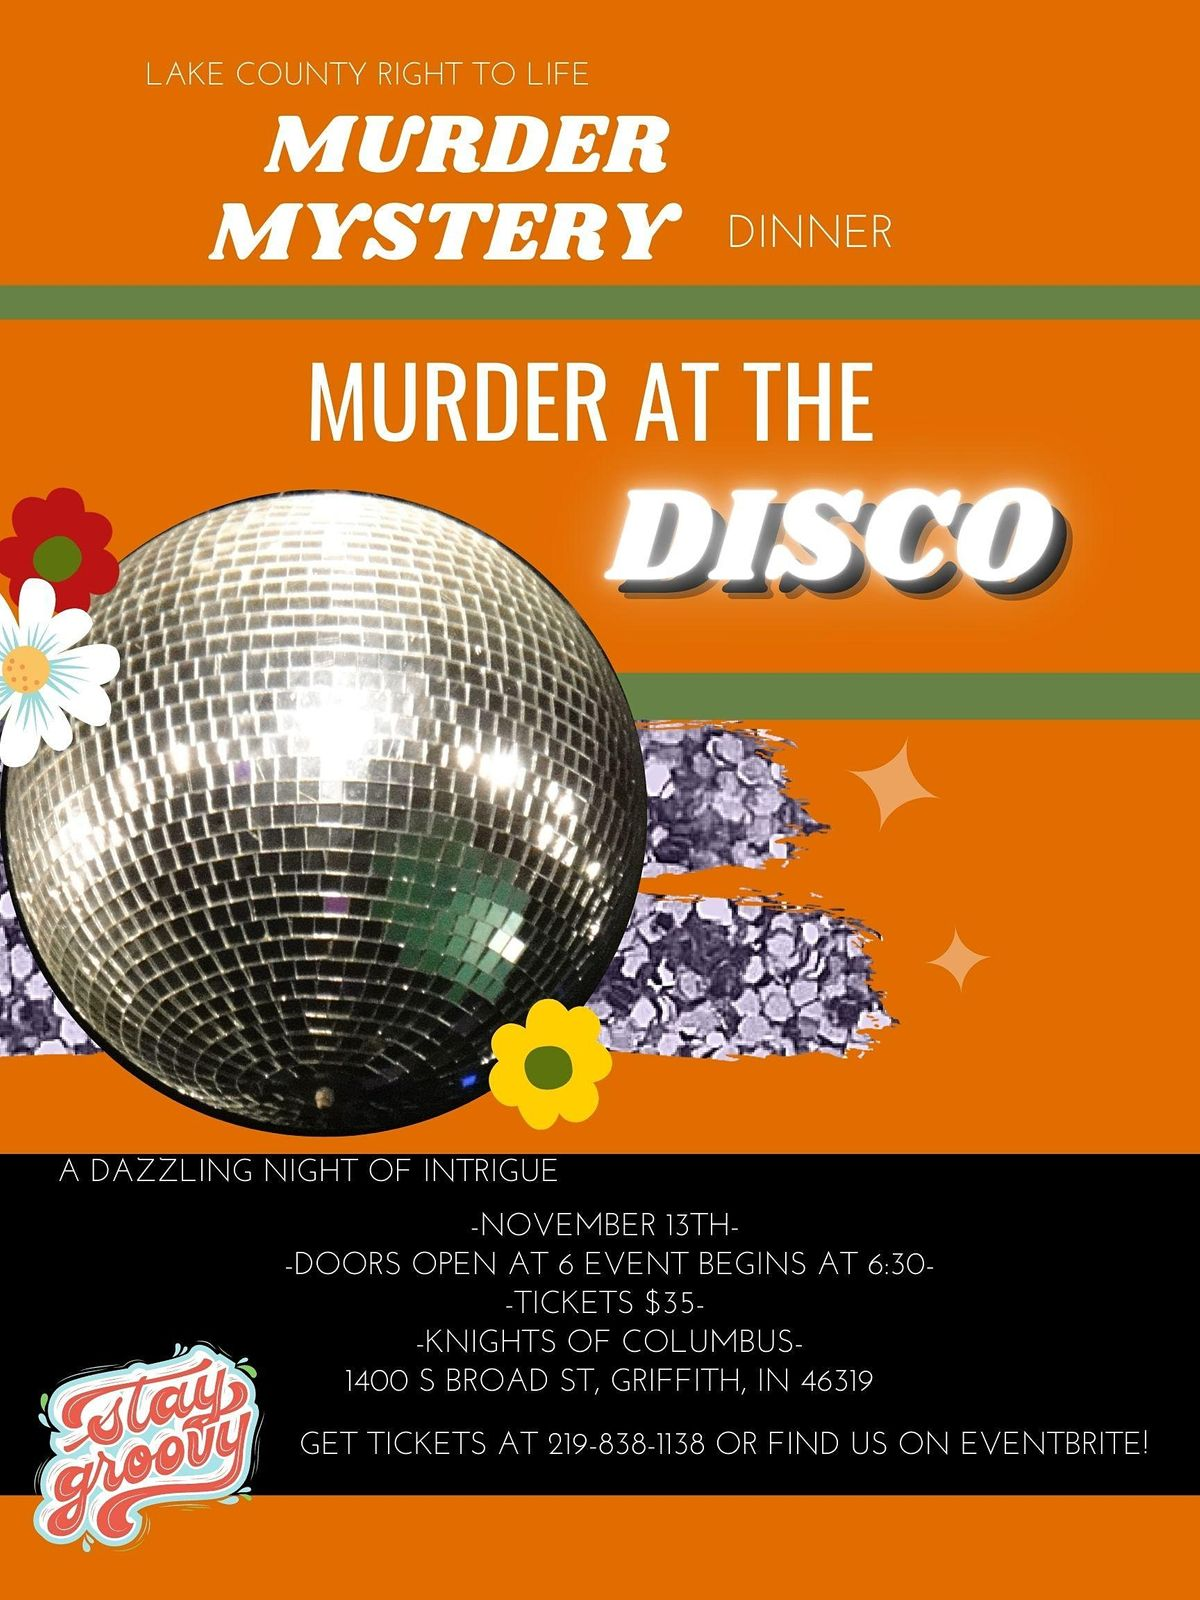 M**der Mystery Dinner- 70's, 13 November | Event in Griffith | AllEvents.in